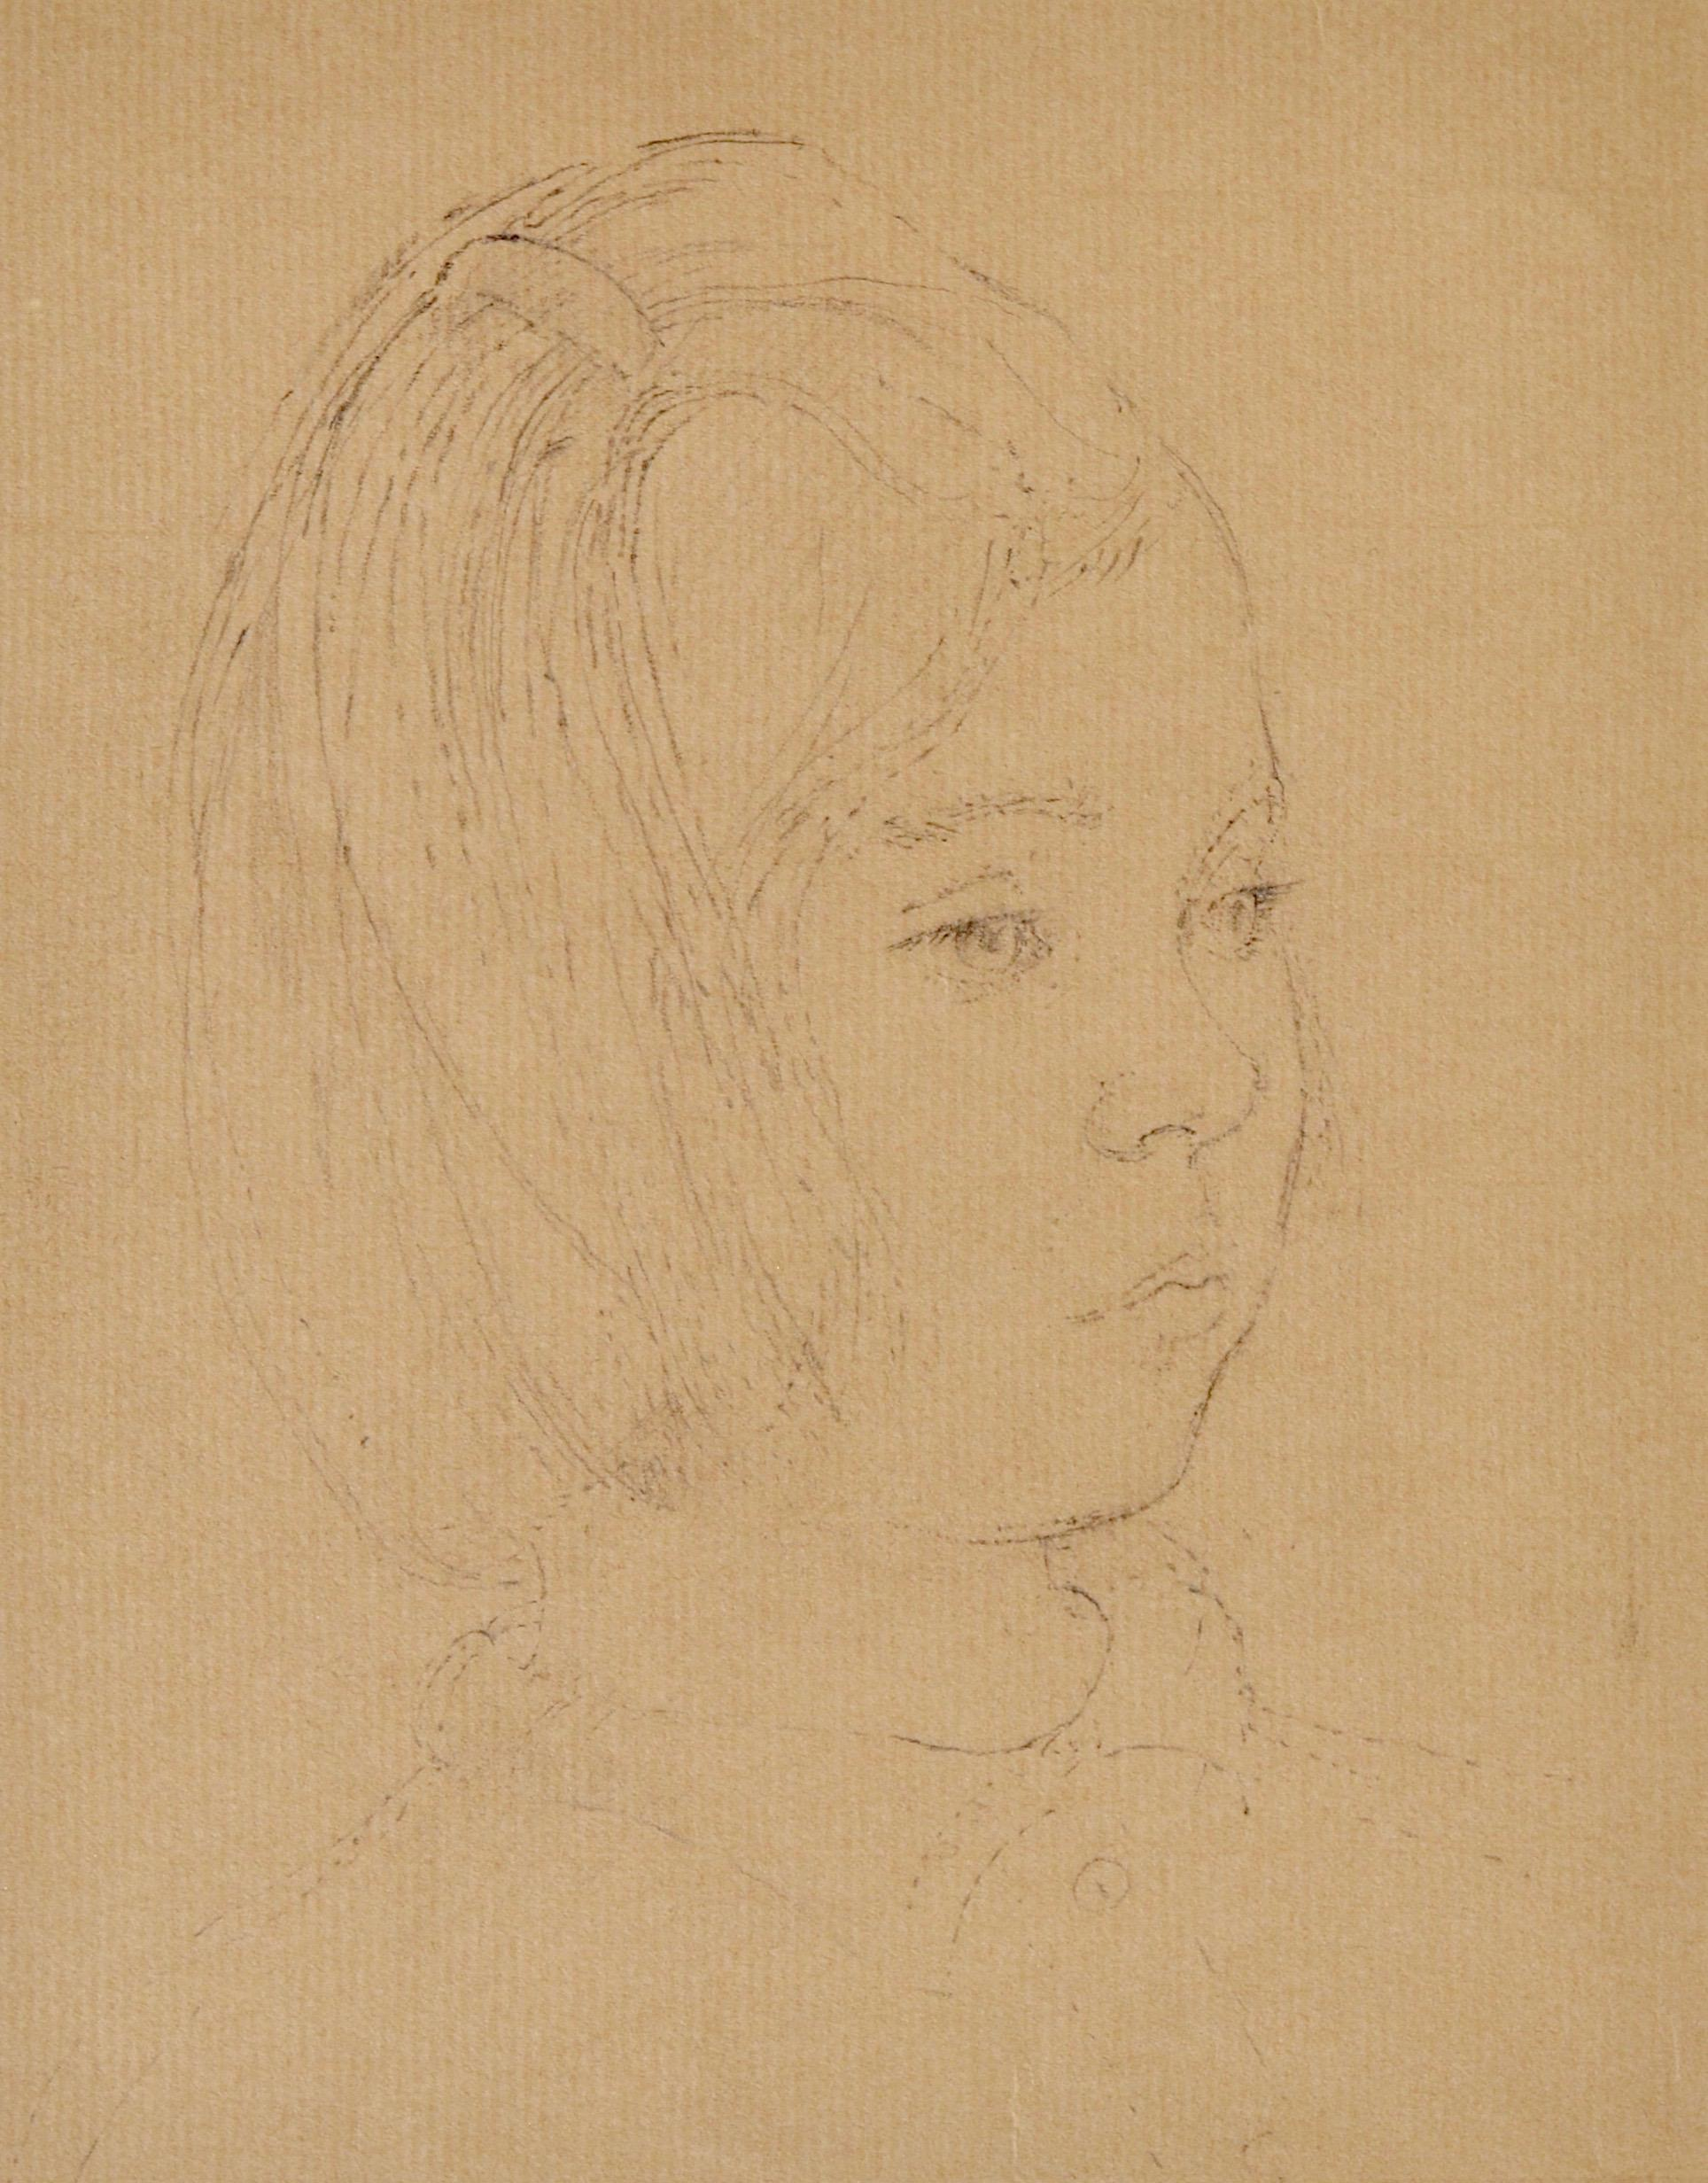 Young Girl - 20th Century British Portrait drawing by John Sergeant